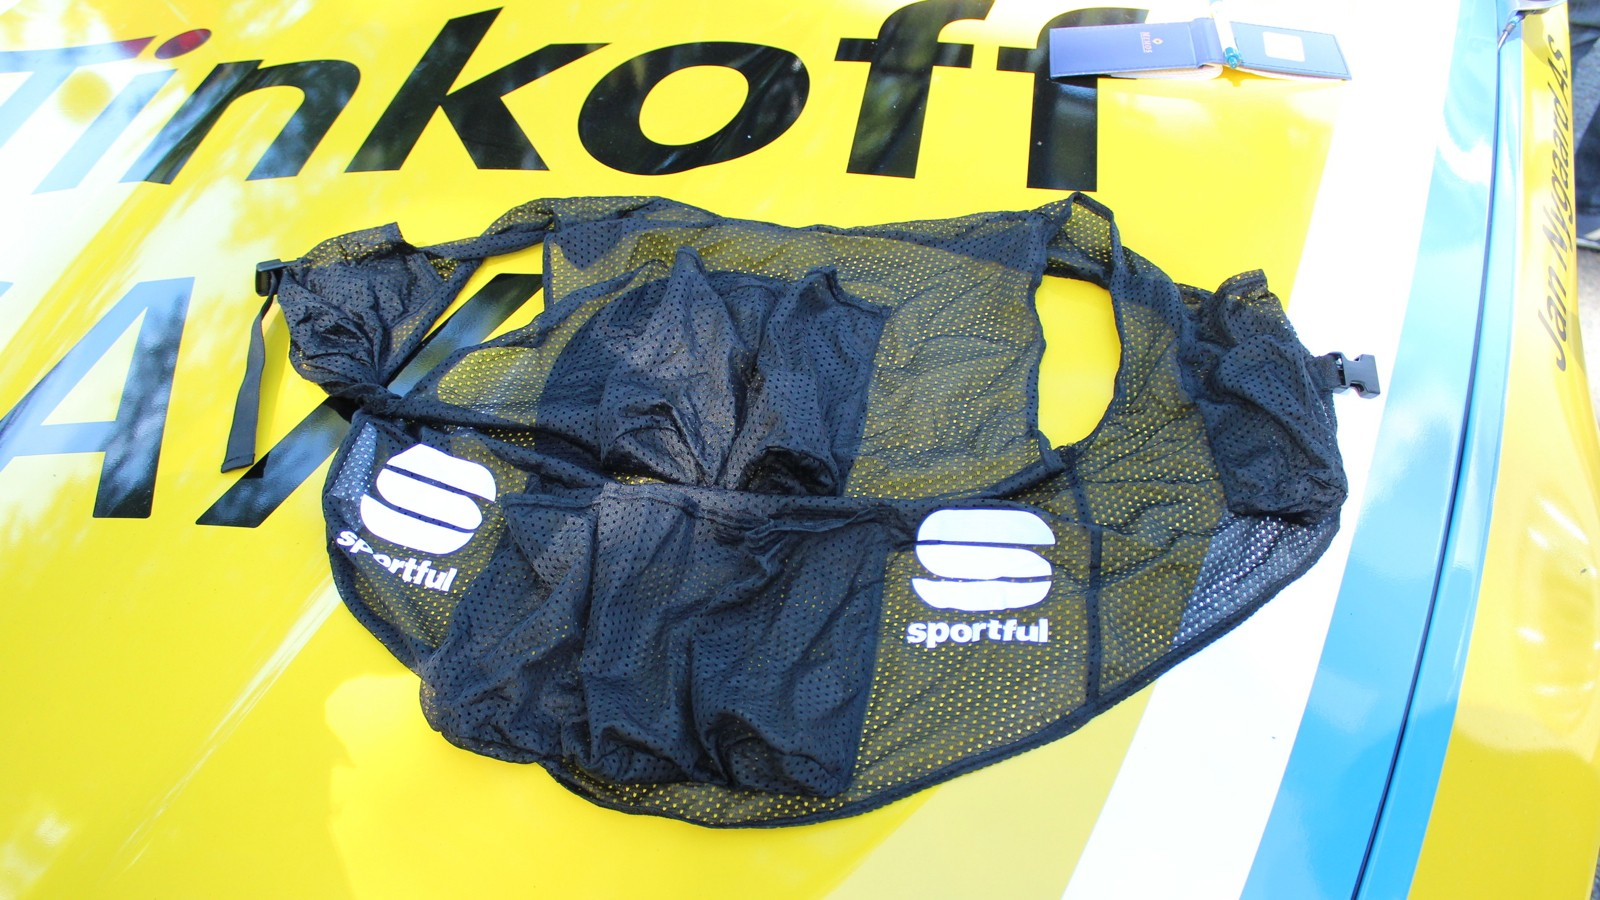 Tinkoff-Saxo Bank has a new vest for carrying seven water bottles. Instead of cramming the bottles inside a jersey, a rider just slides on this Sportful vest that a mechanic has loaded up inside the car